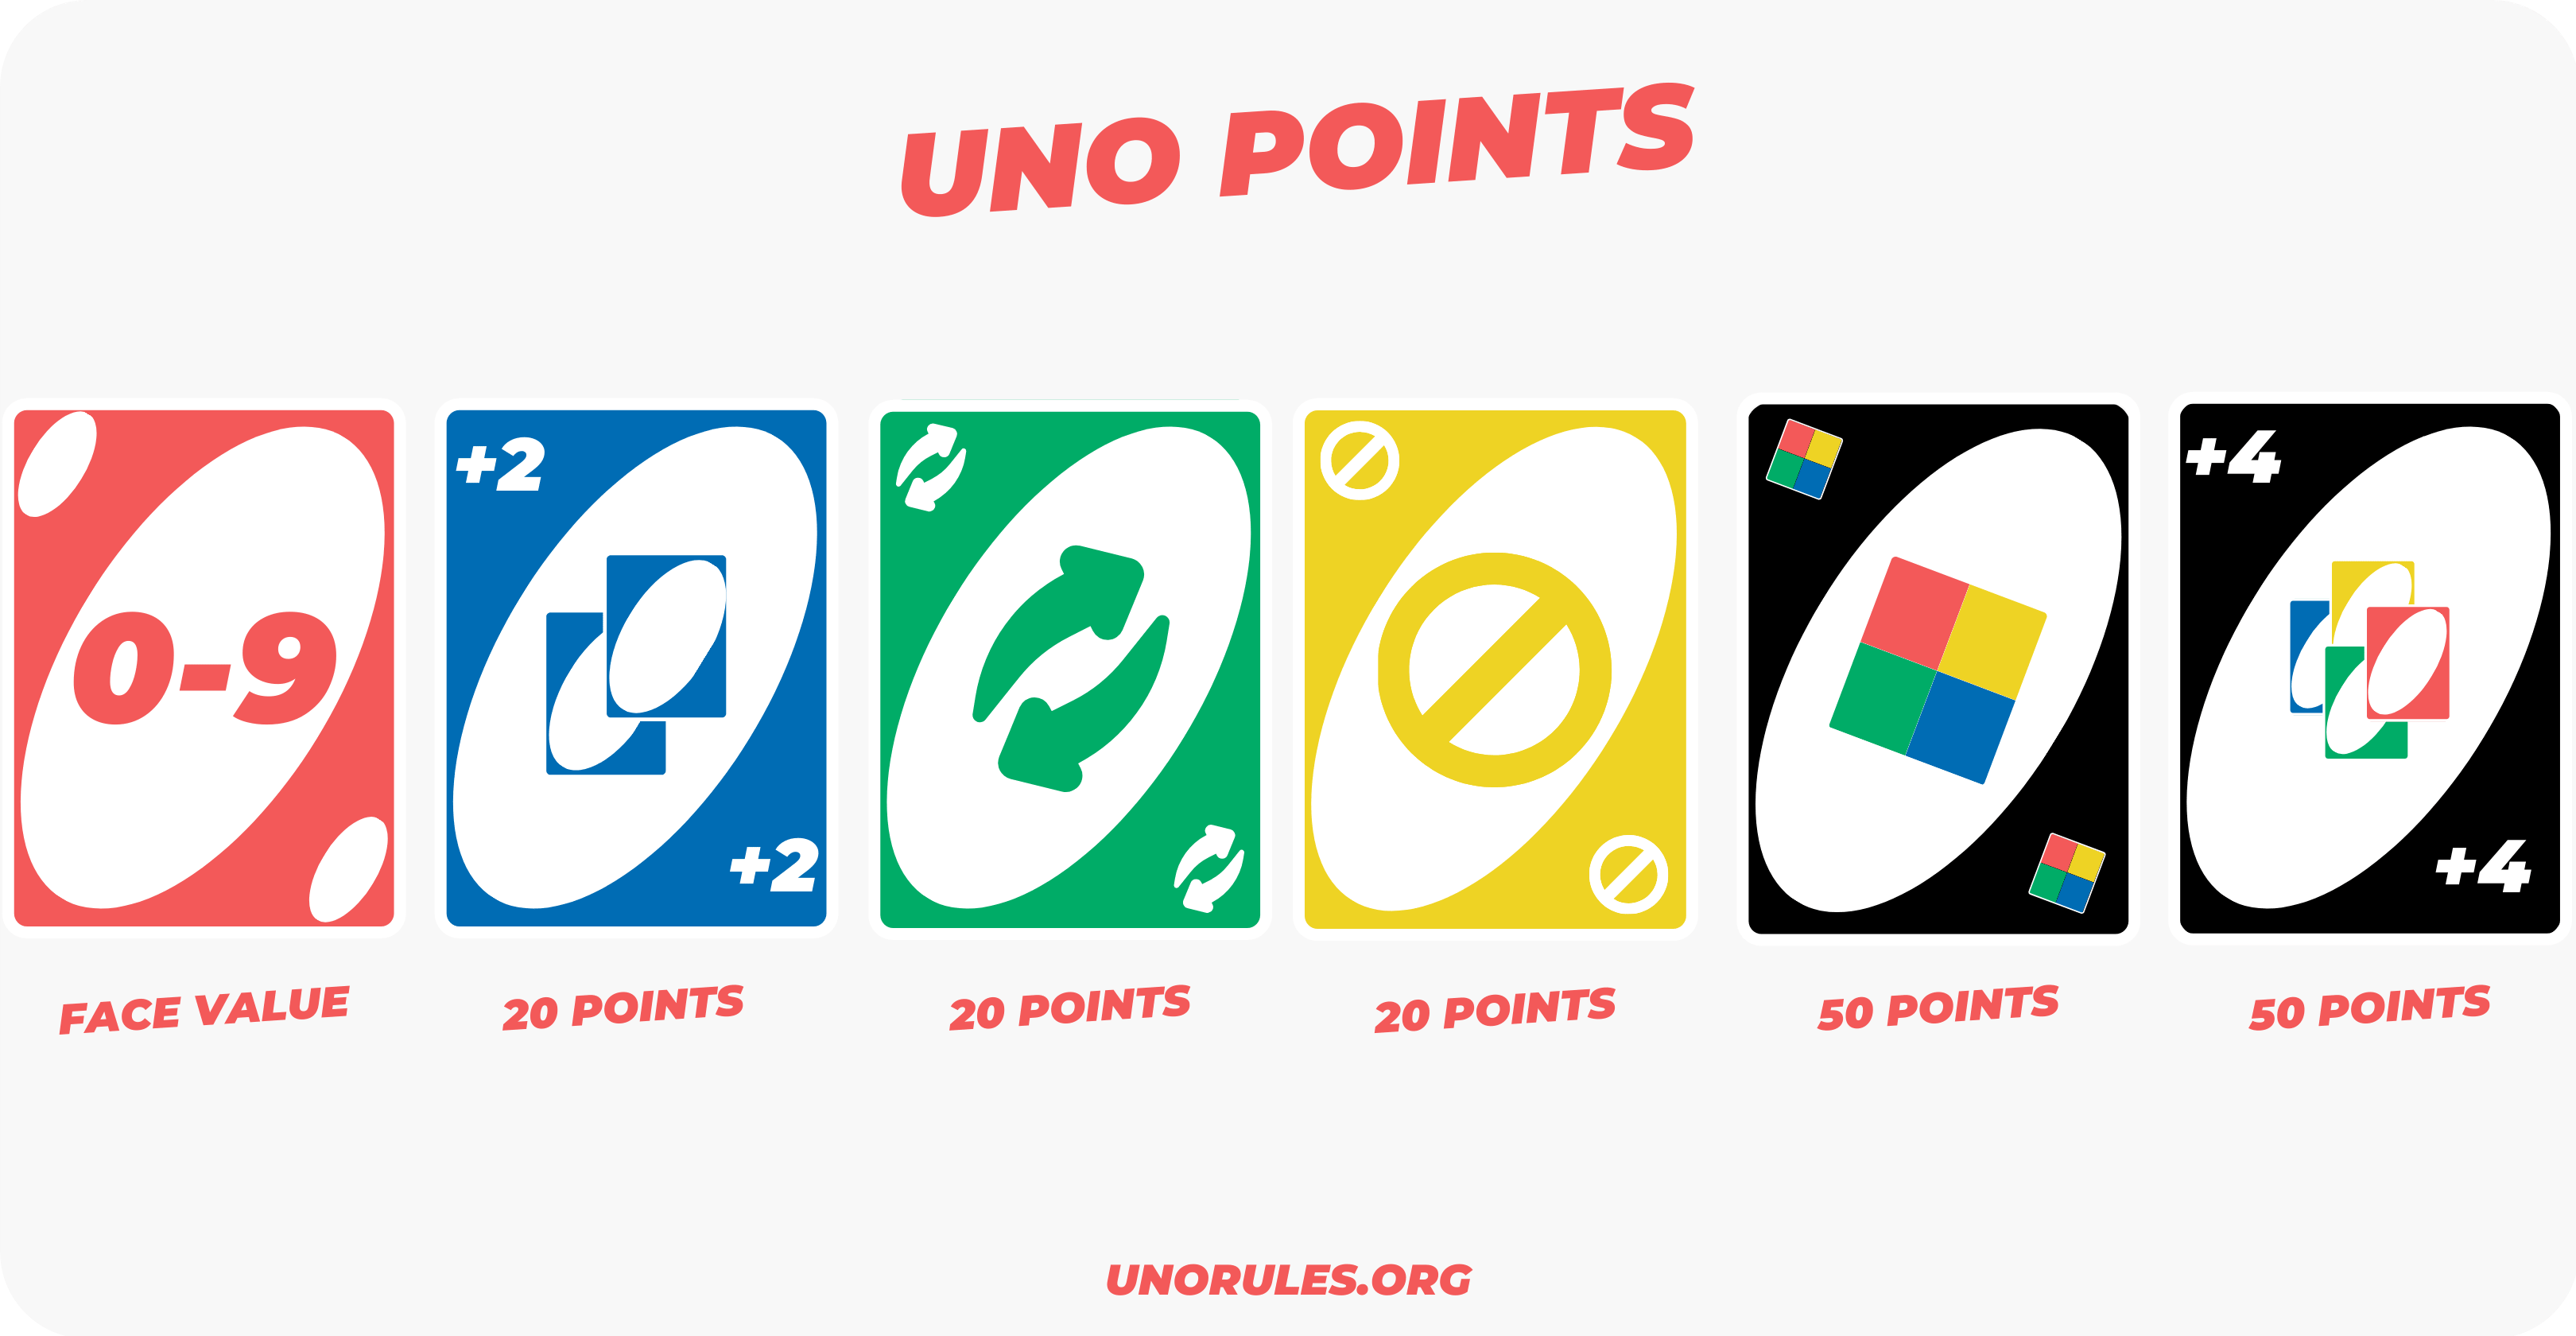 Uno points - Uno card points